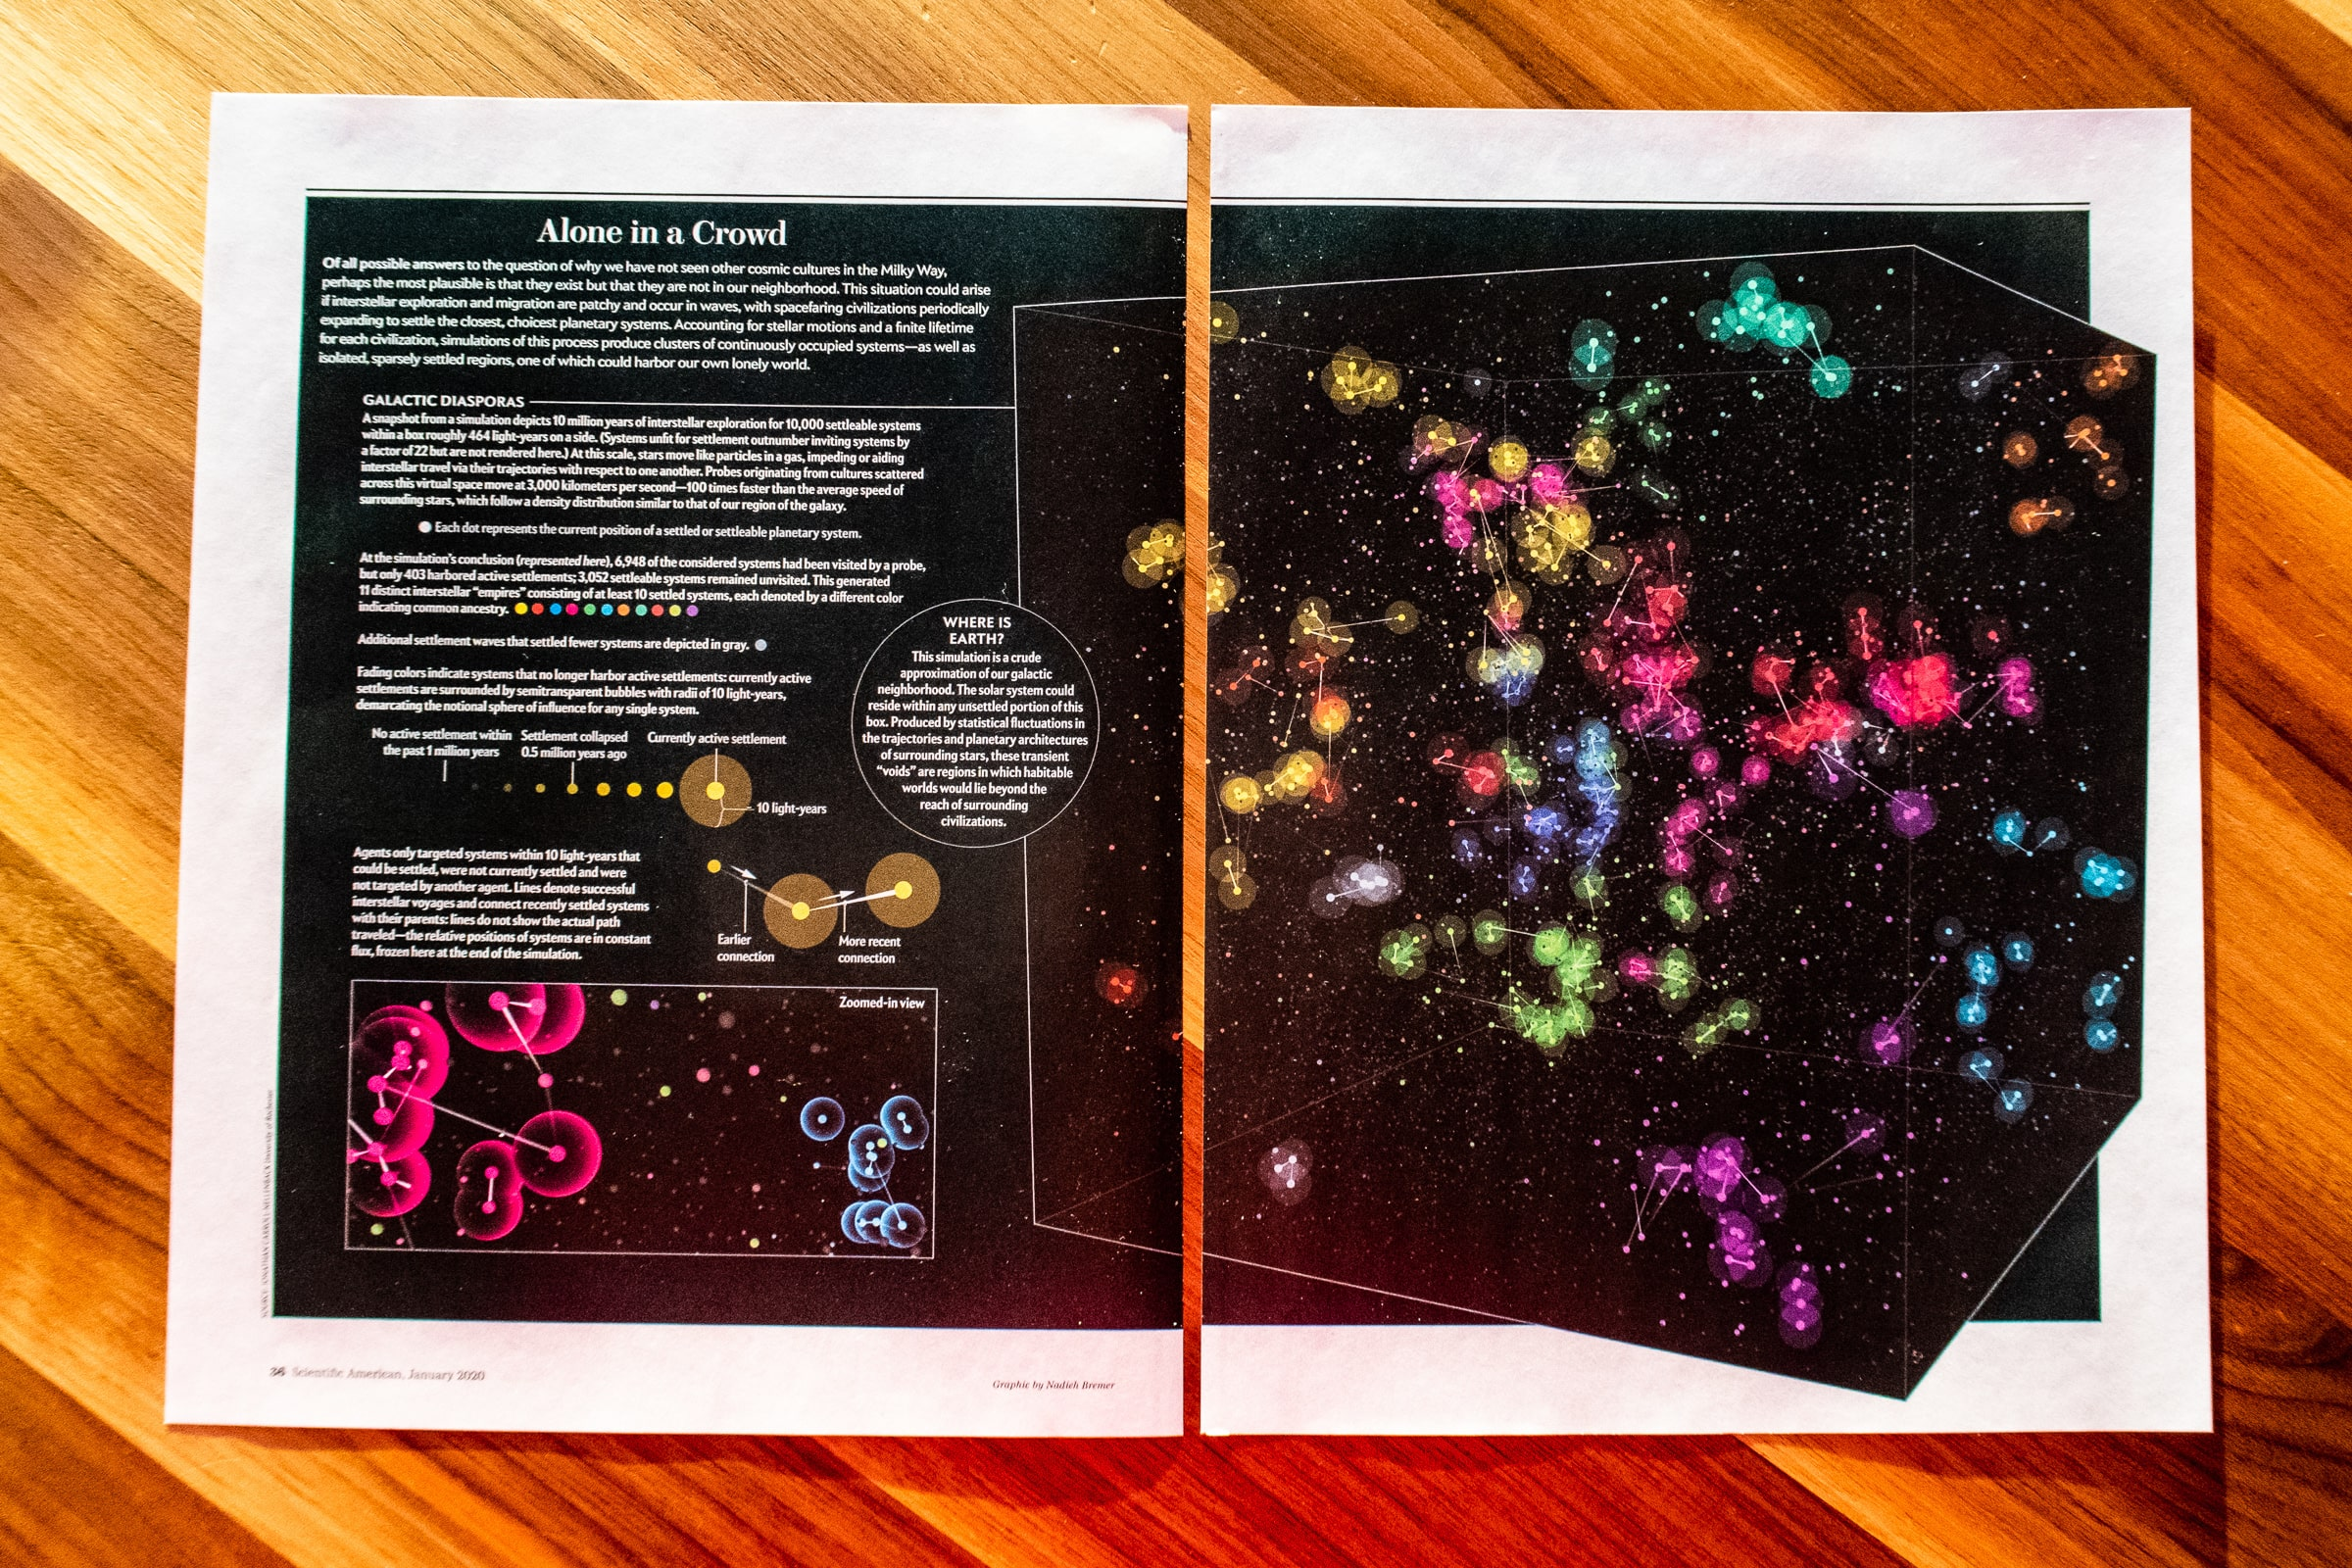 The full spread of the visualization of the Fermi Paradox simulation